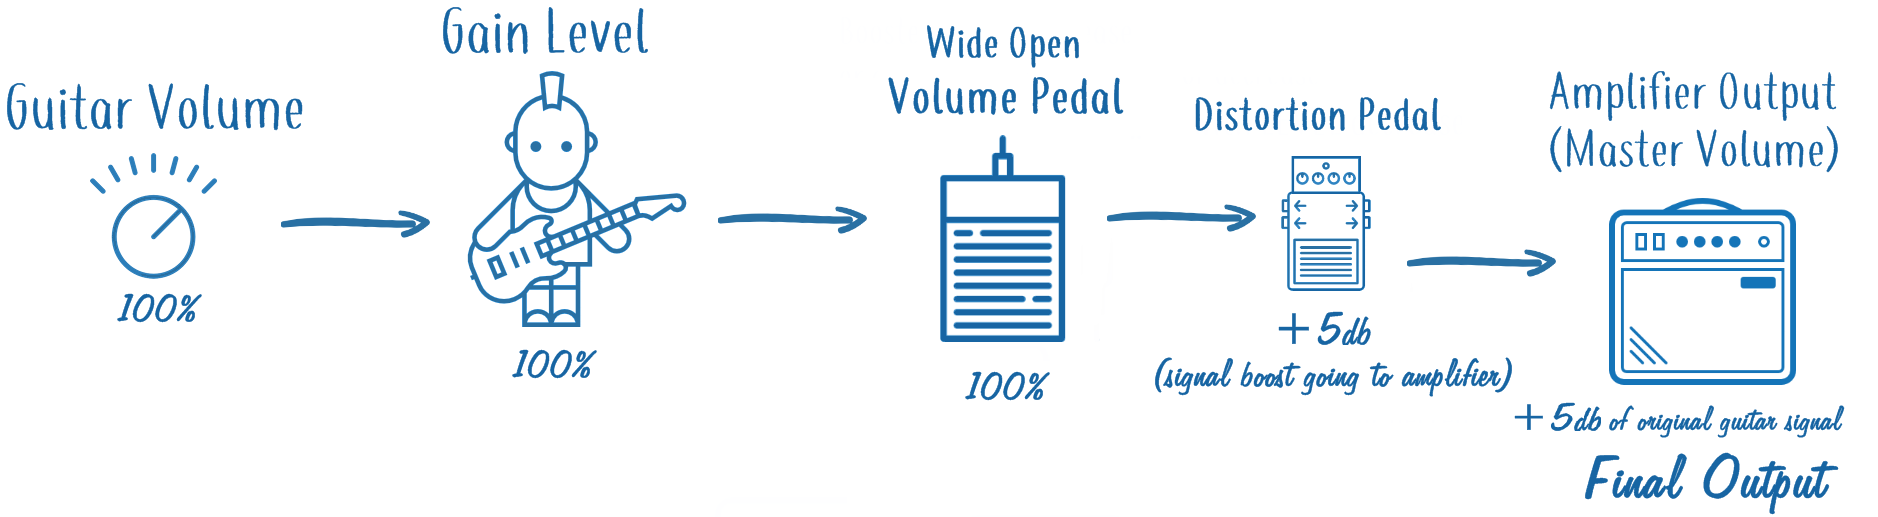 Guitar Signal Volume Changes with Volume and Distortion Pedal - Wide Open Volume Pedal